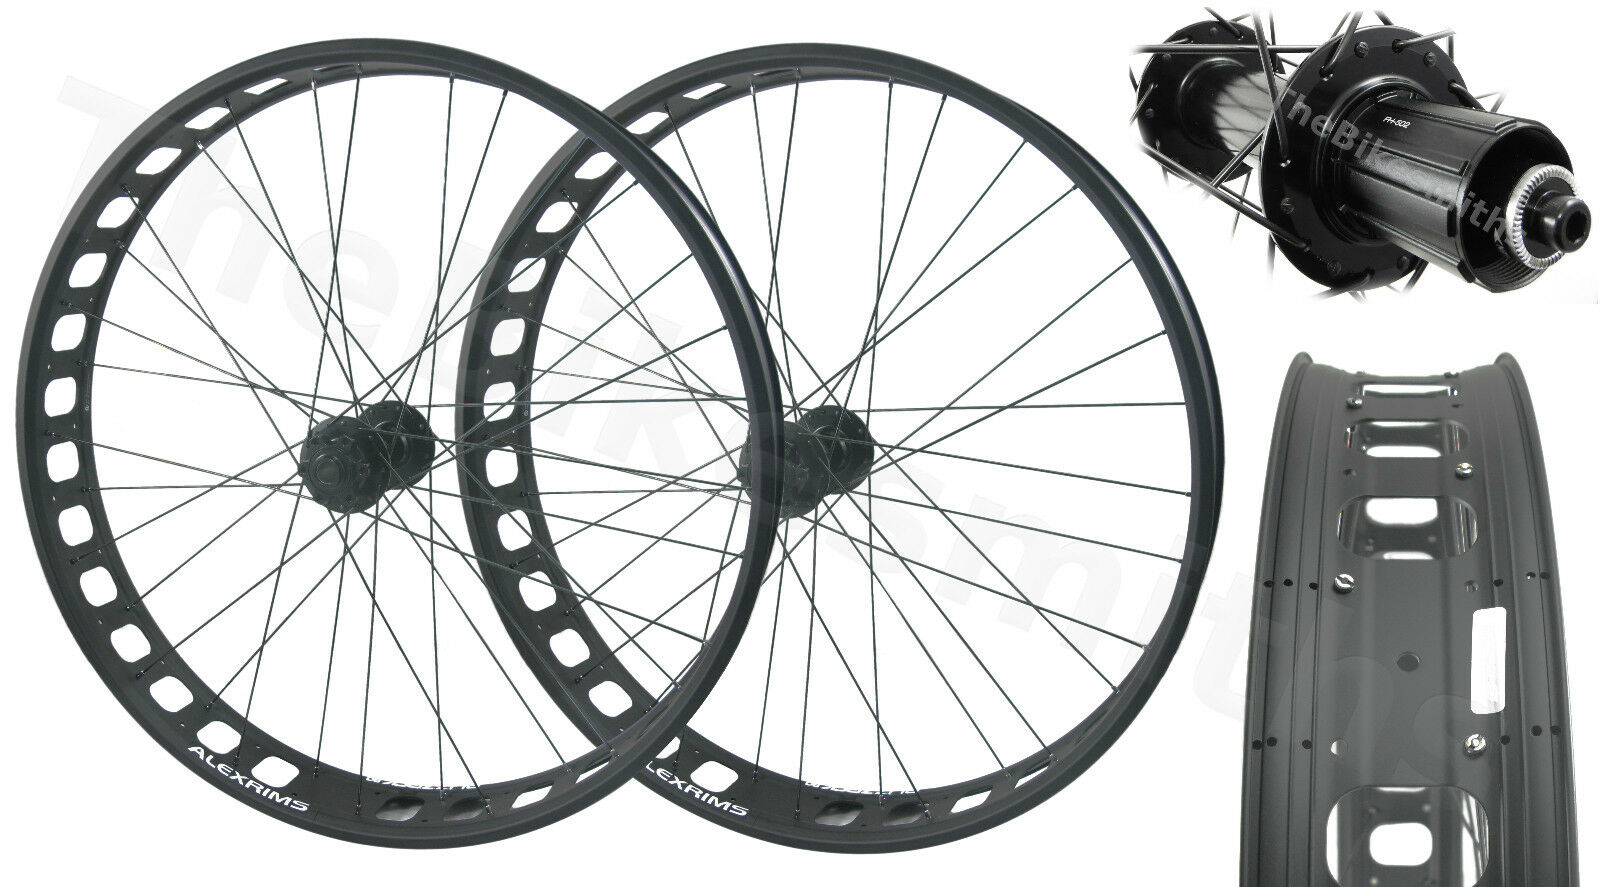 Alex Blizzerk 90 Tubeless Fat Bike Wheelset 150mm Thru-Axle Front  190mm QR Rear